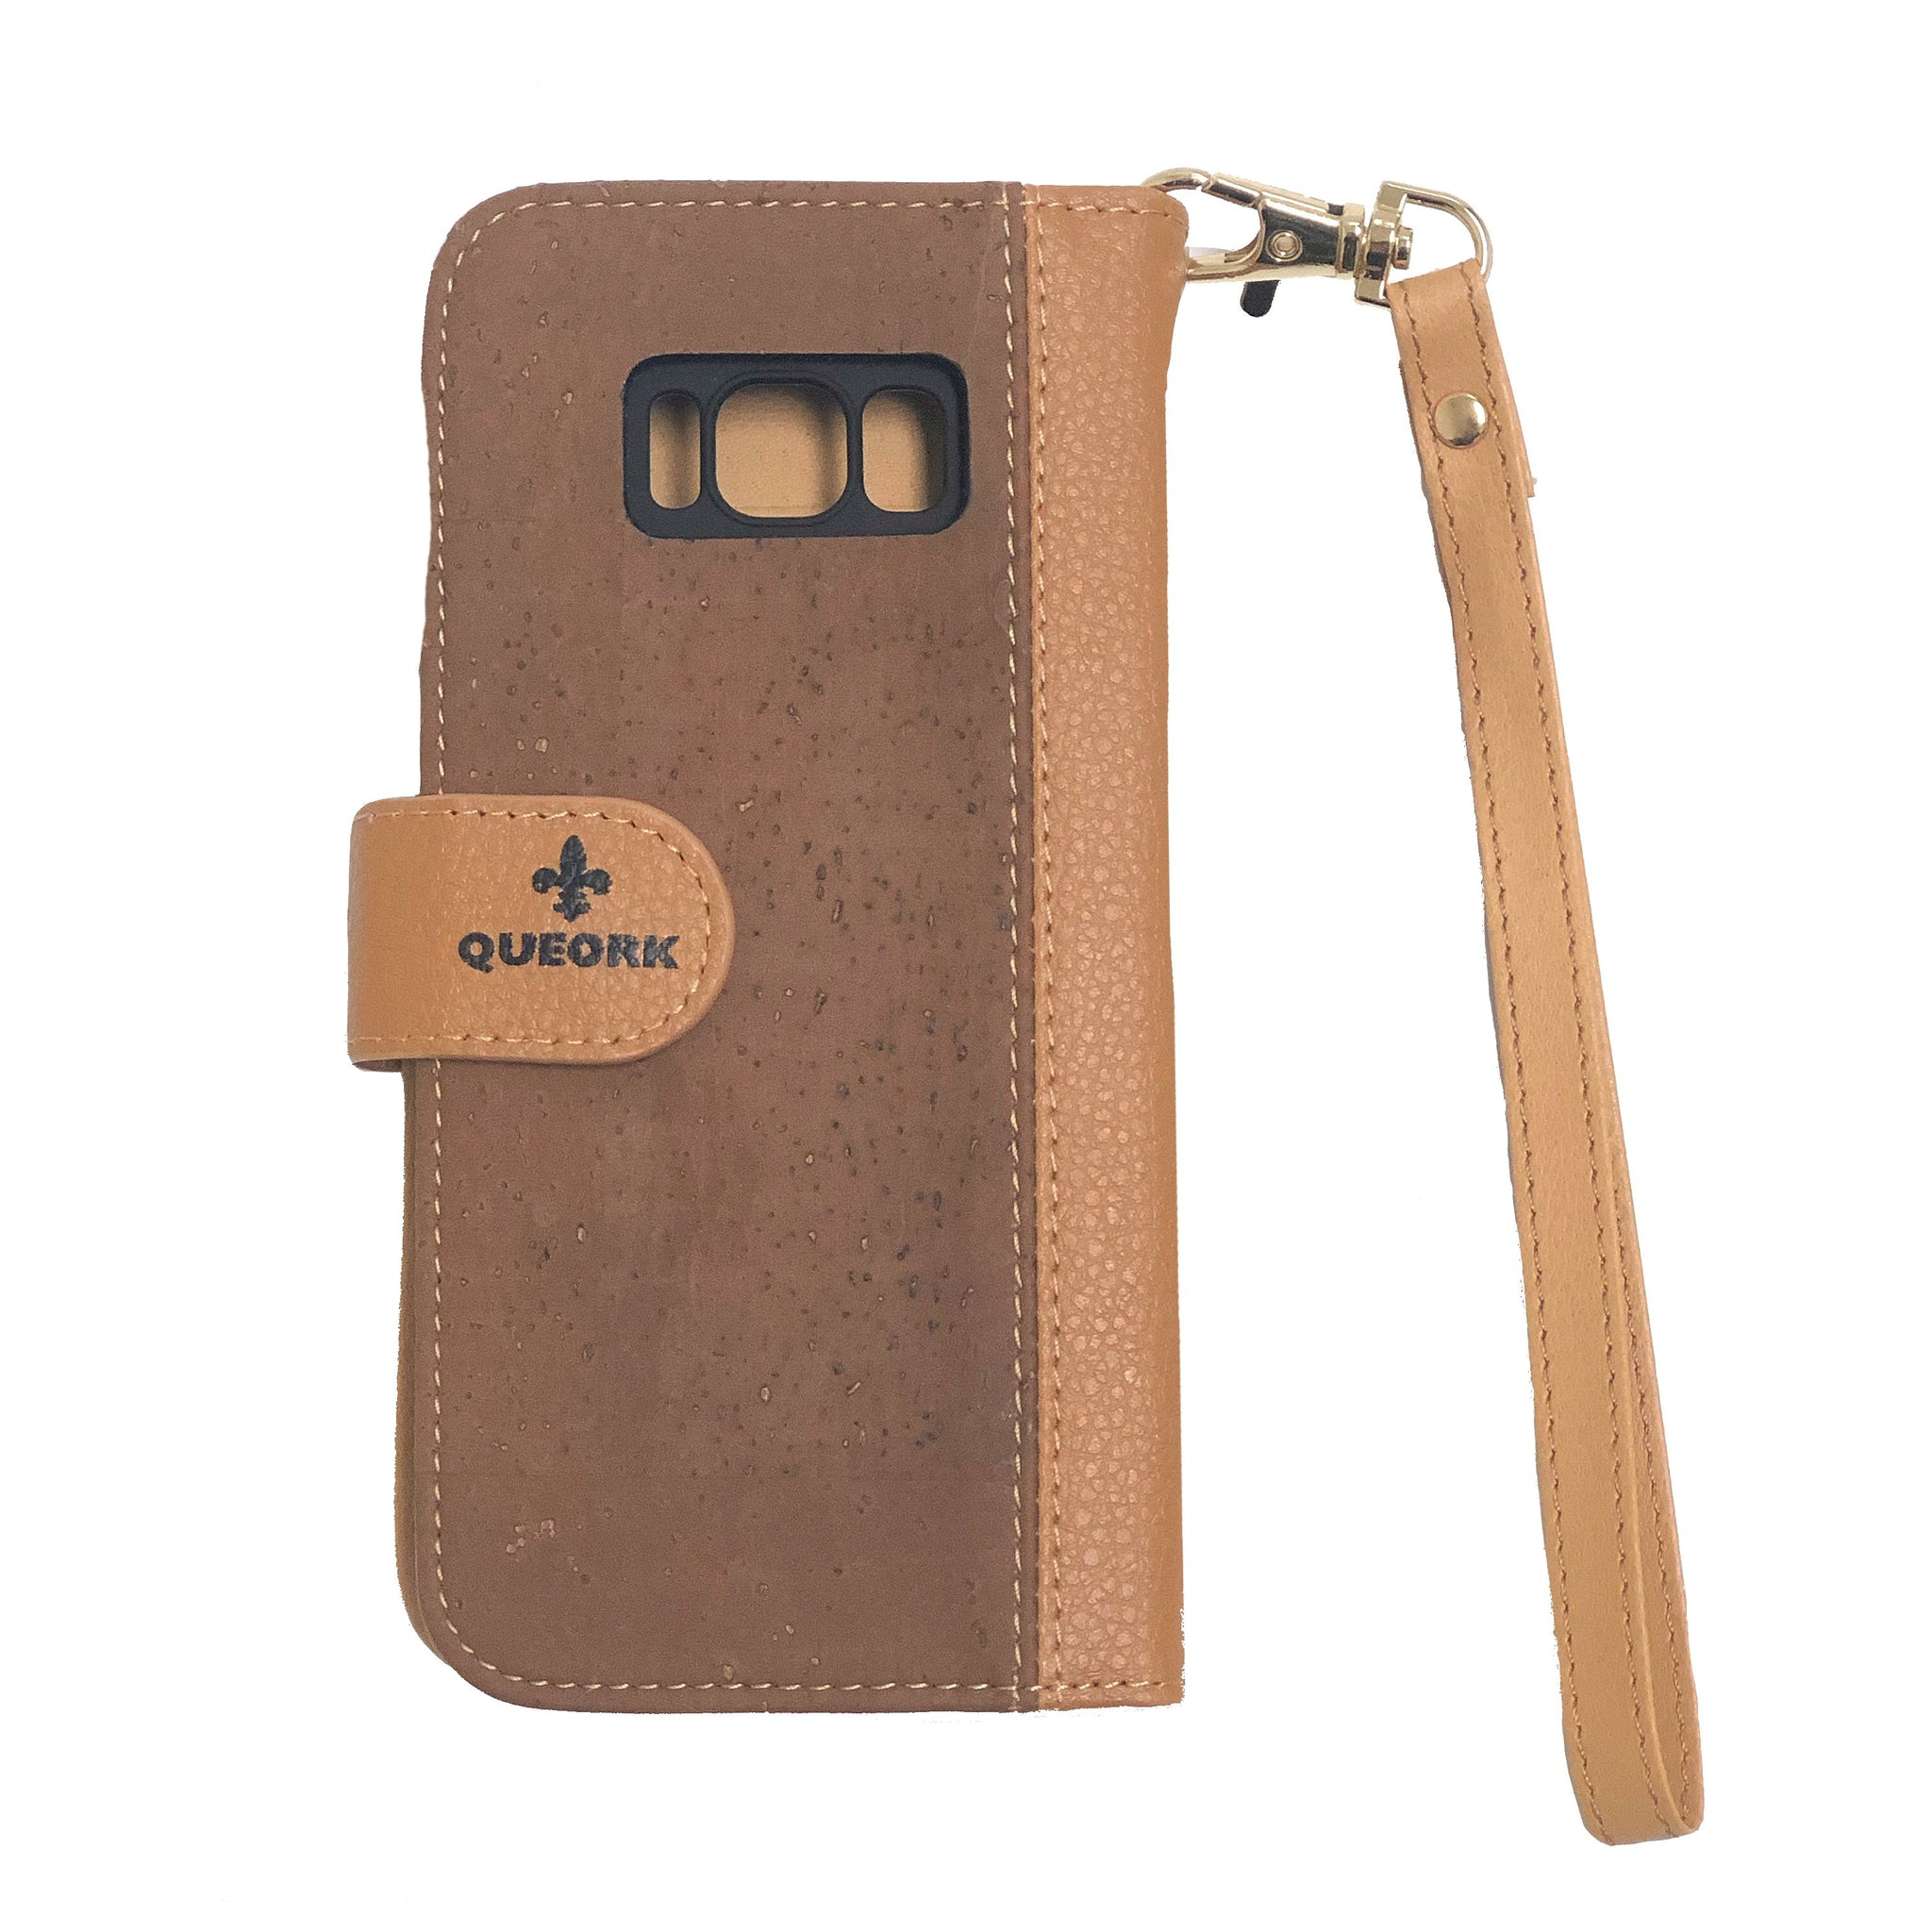 queork cork samsung phone wallet case beige